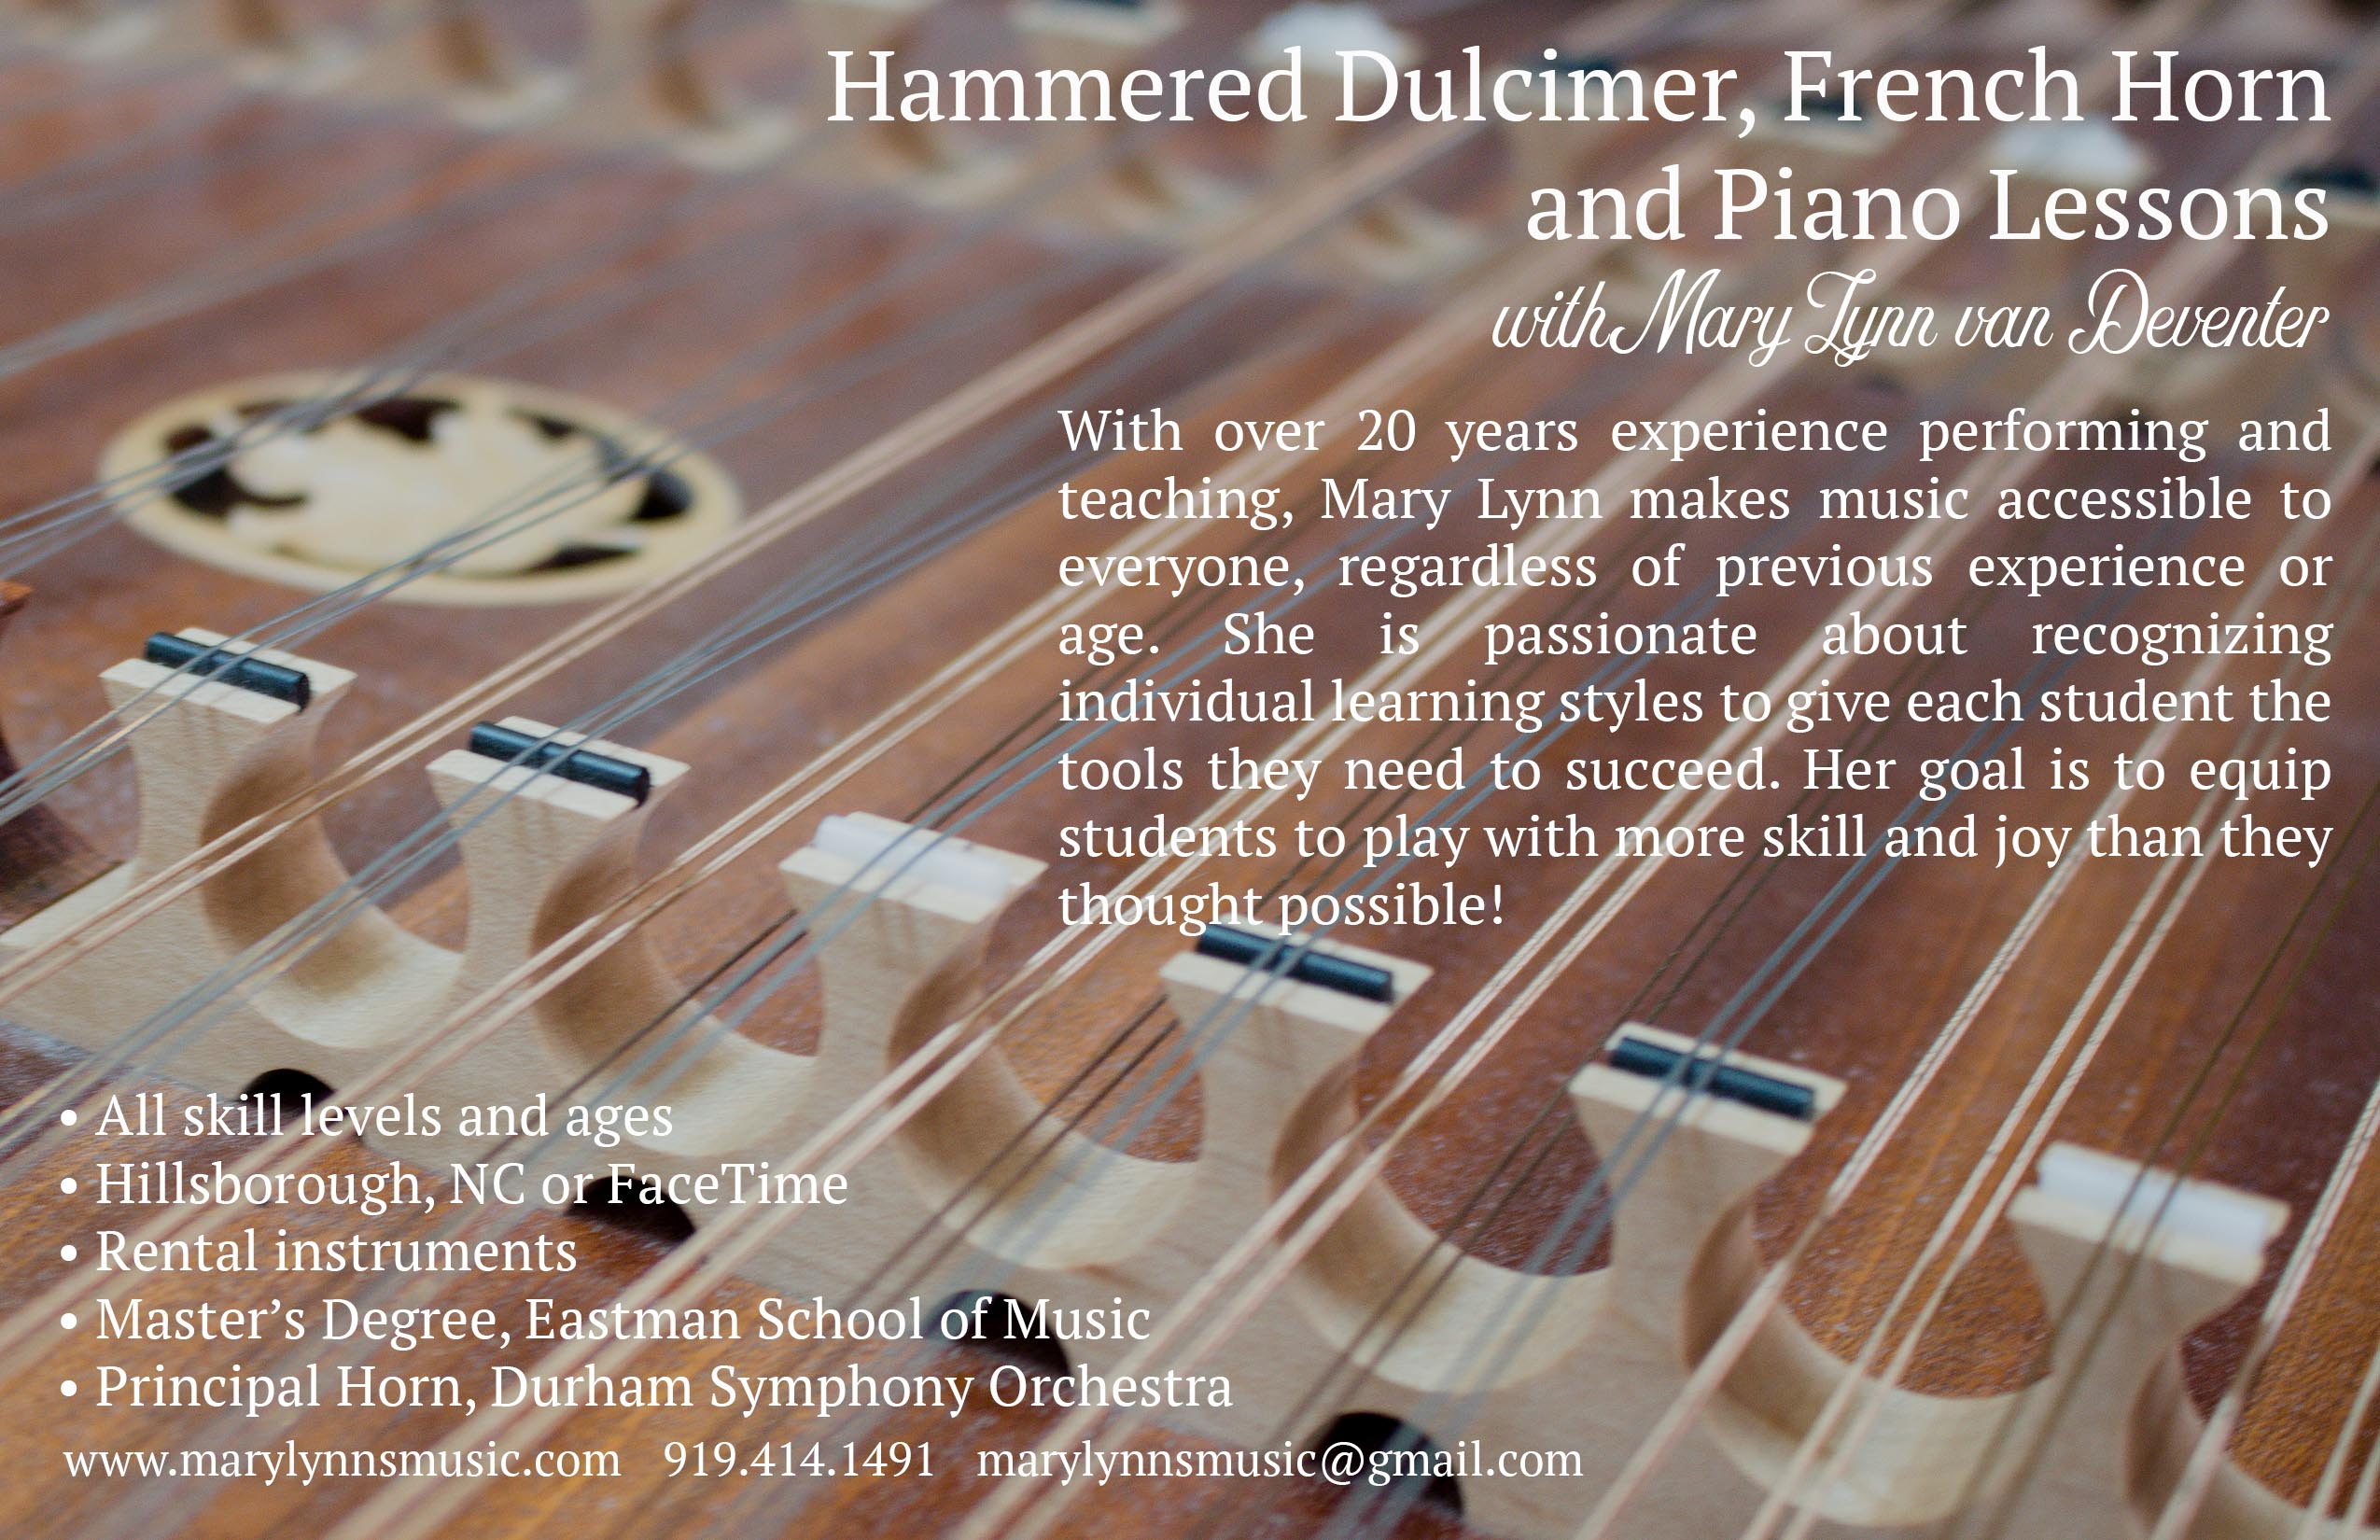 Mary Lynn van Deventer teaches hammered dulcimer, french horn, and piano! Here's a few creations I designed for her! | Teaspoon of Nose